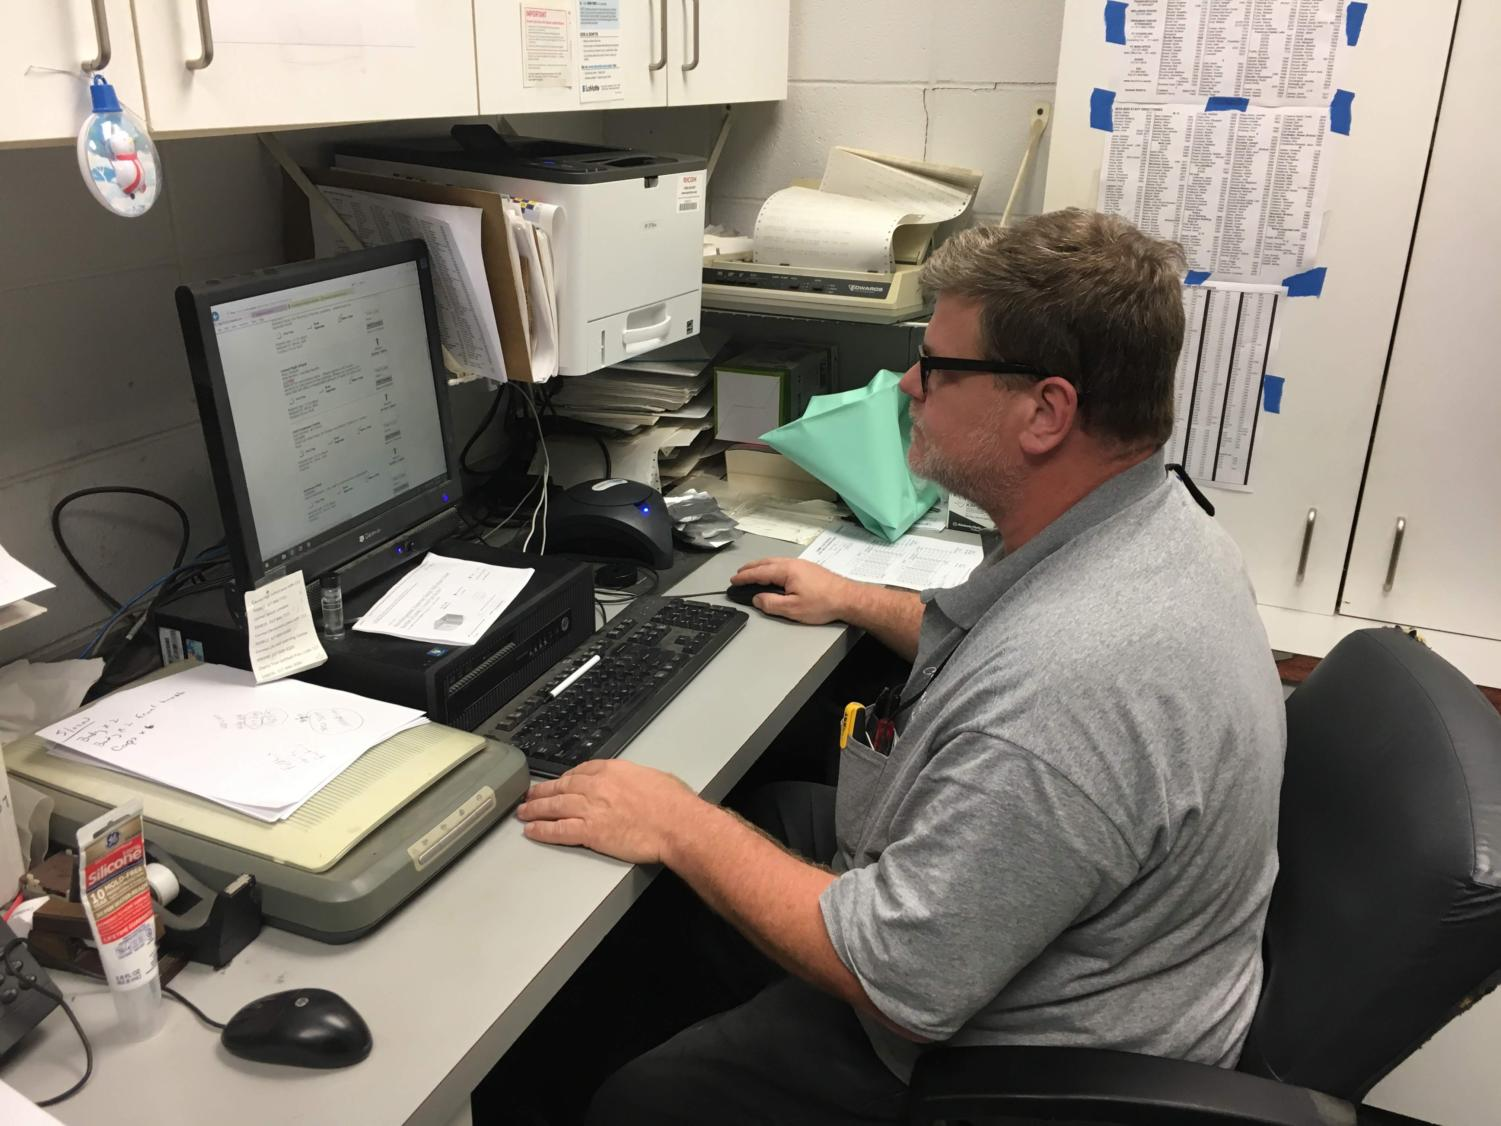 Maintenance worker Fred Napier scrolls through work orders on his computer in the maintenance shop. Napier said that not only does the maintenance staff have to deal with big things like salting parking lots, but they also have to keep up with the day to day needs of the school in the form of work orders.